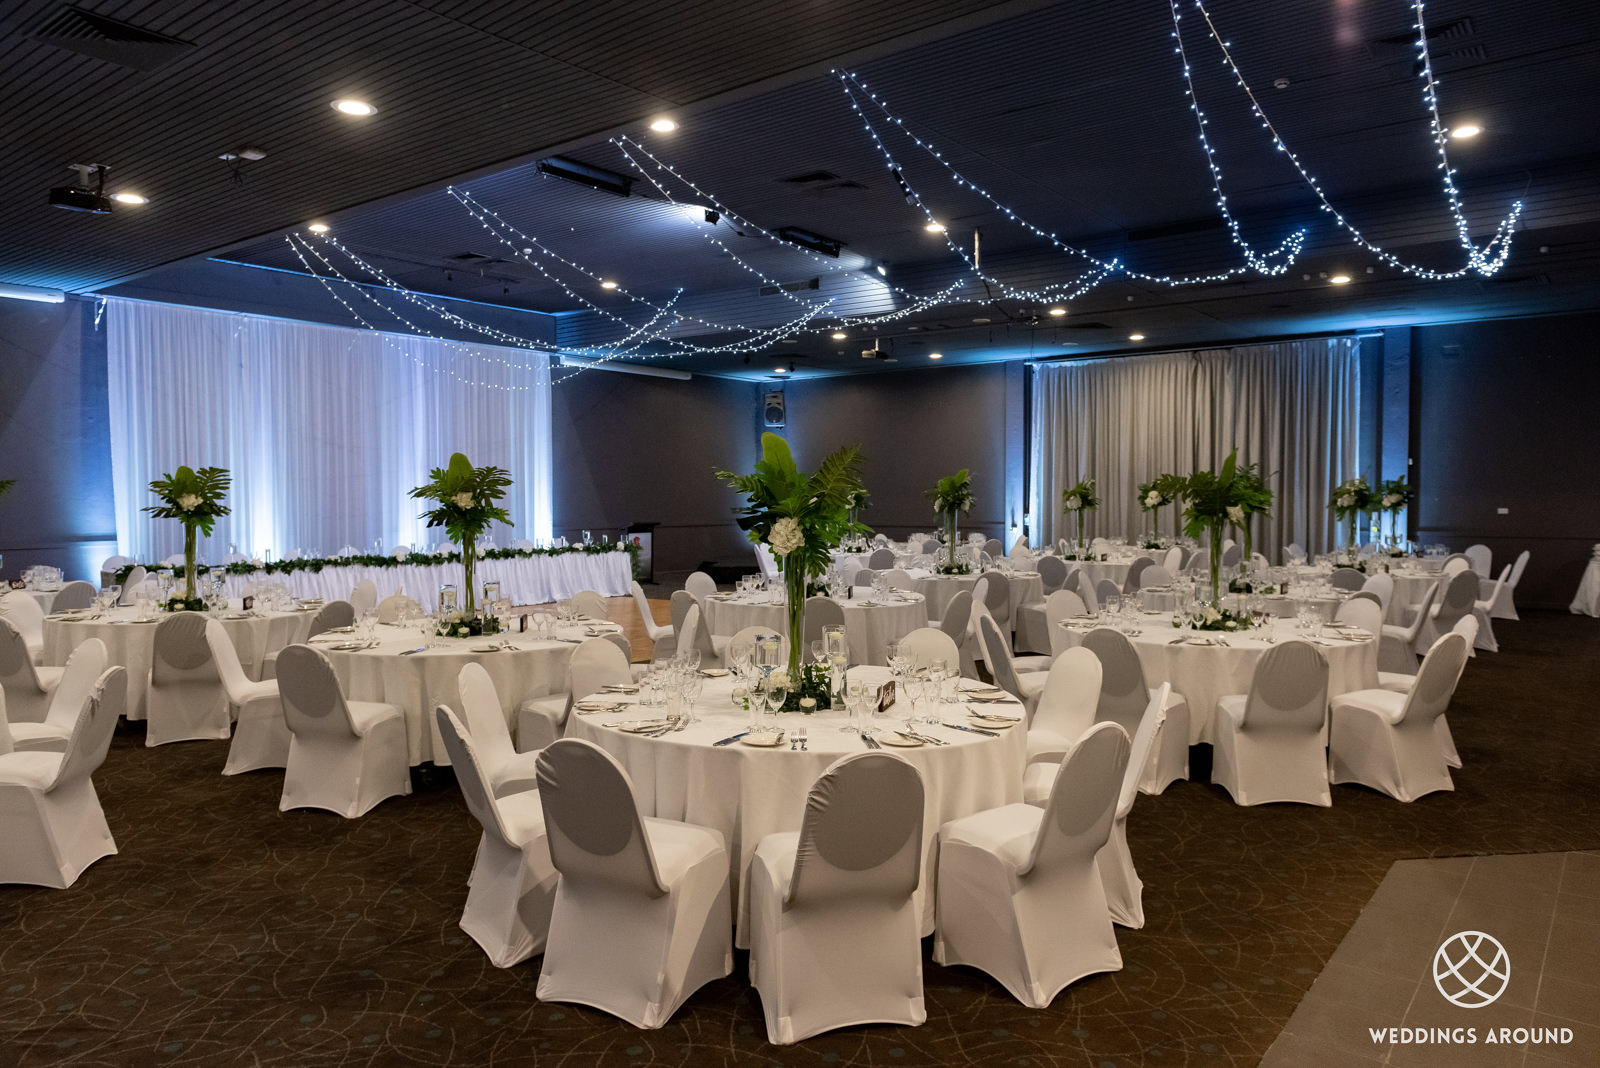 Souths Merewether Wedding Reception